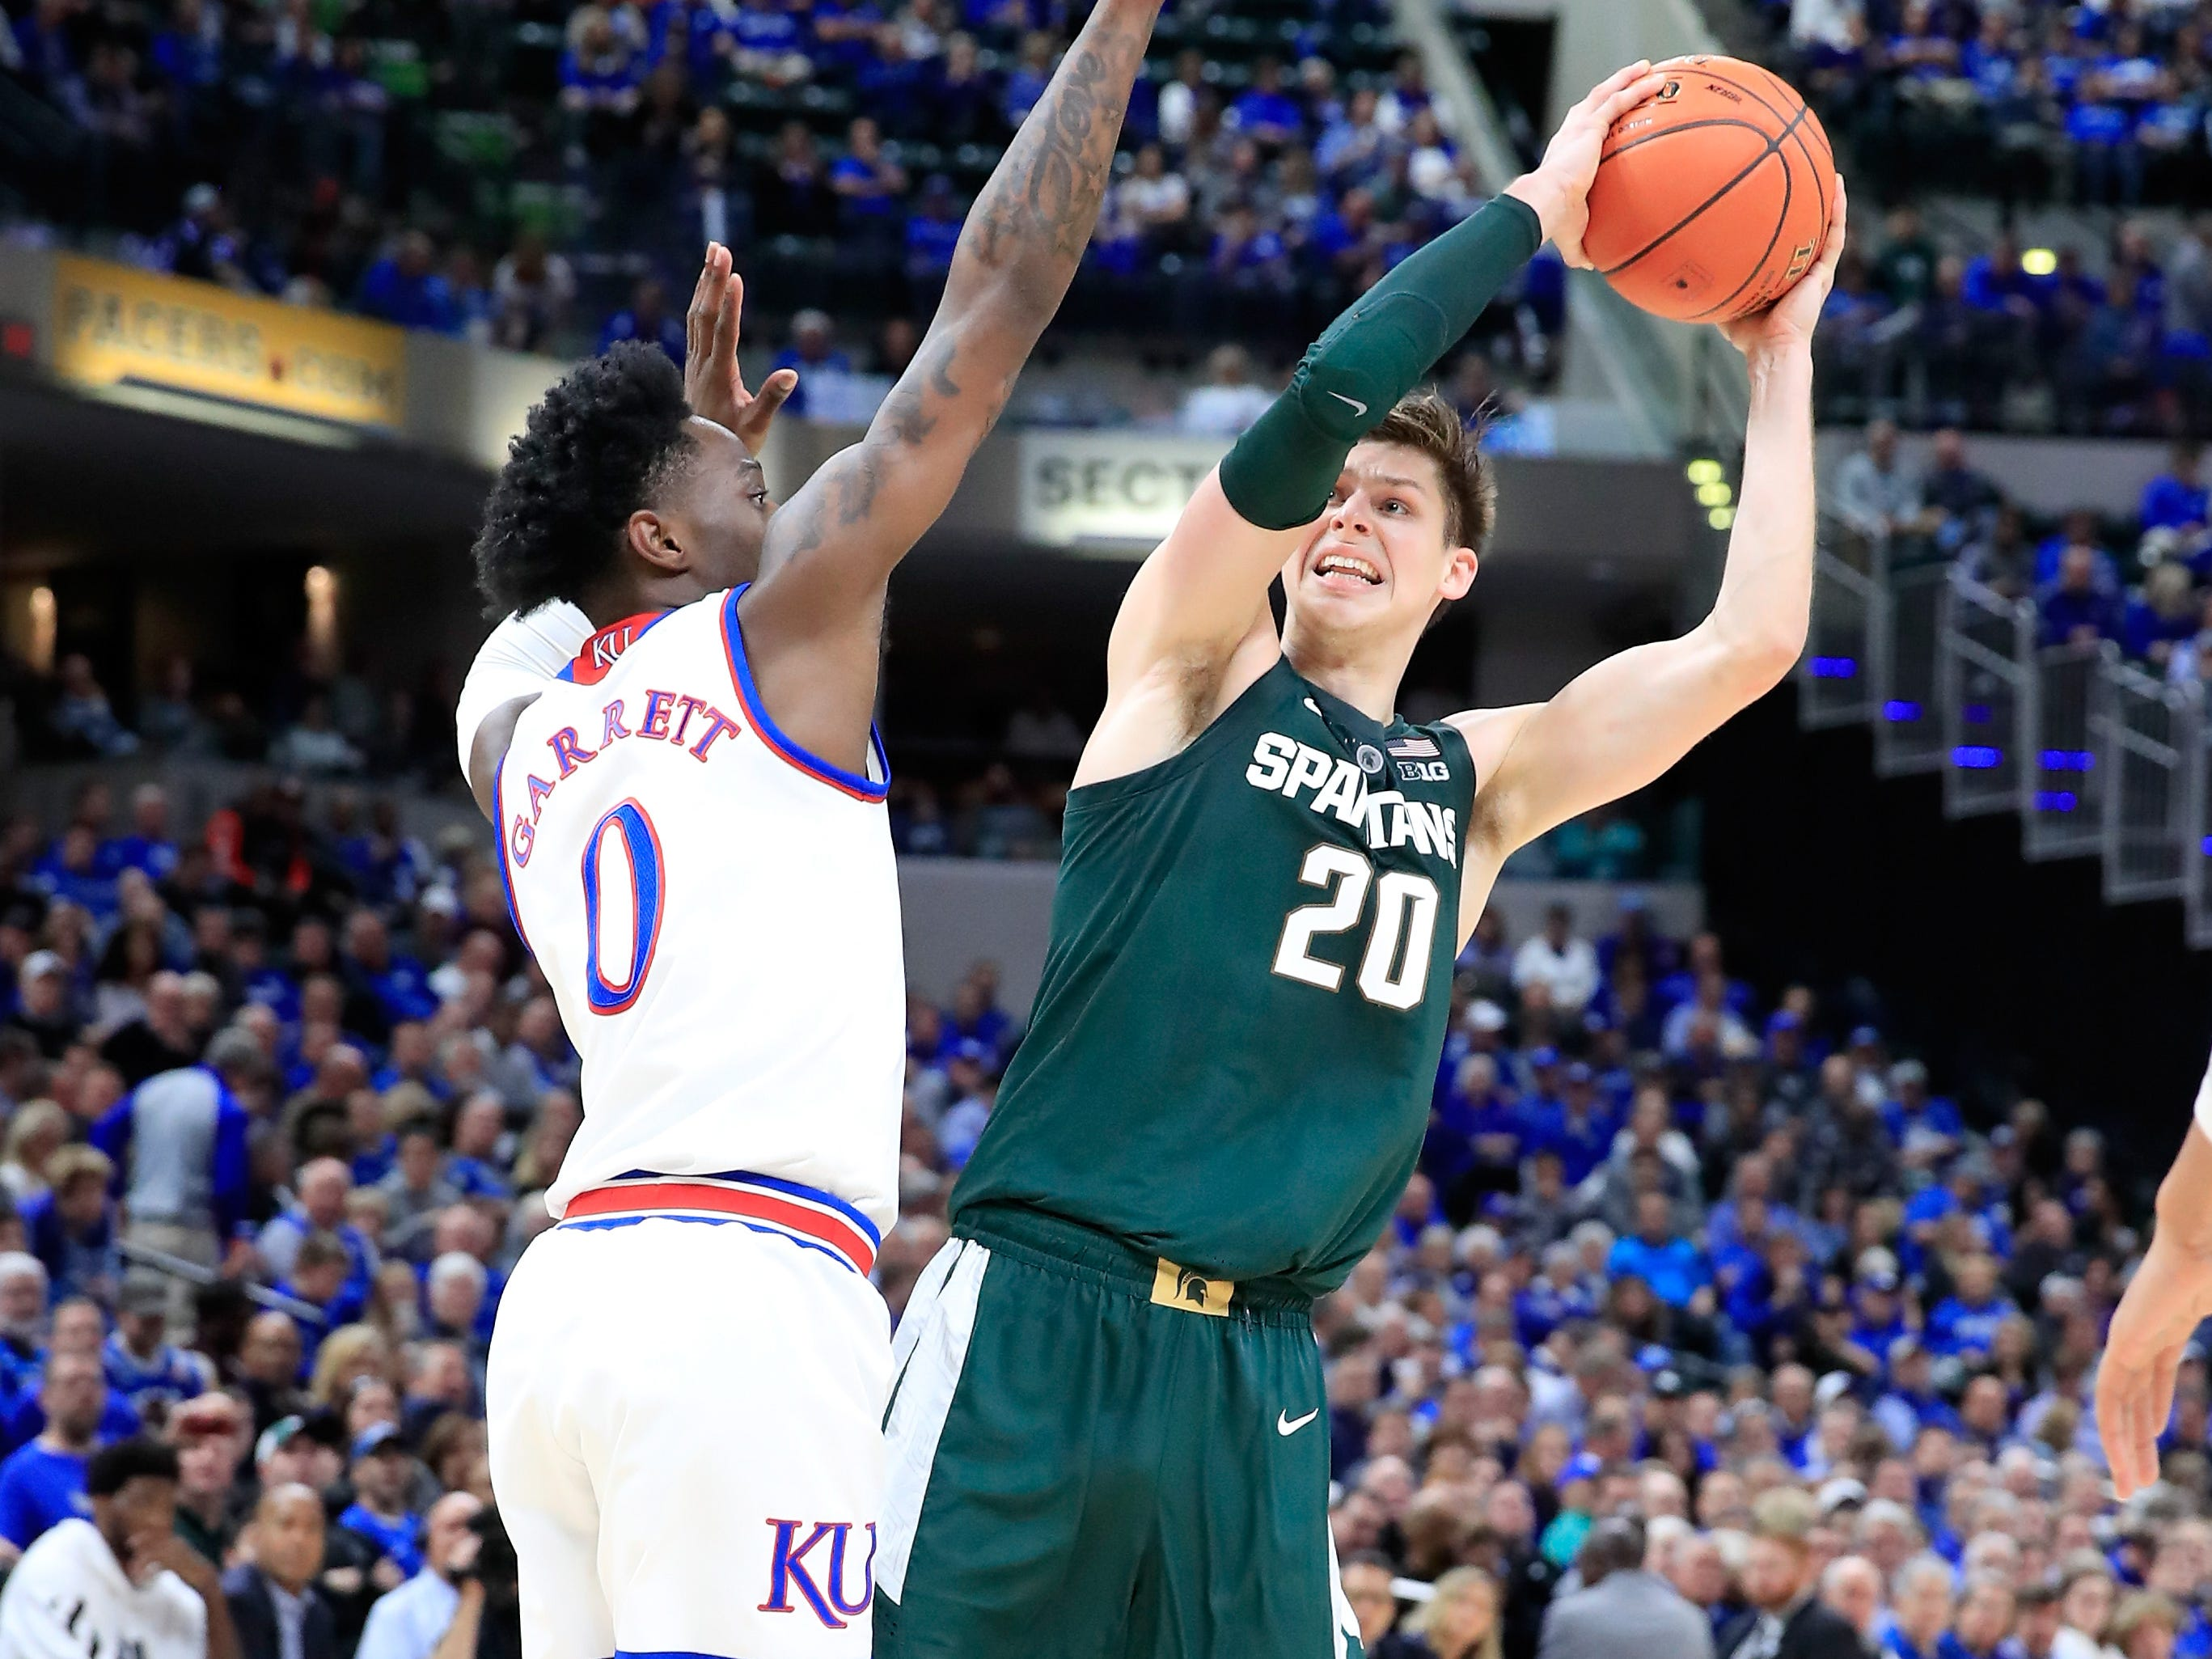 Matt McQuaid #20 of the Michigan State Spartans shoots the ball against the Kansas Jayhwaks during the State Farm Champions Classic at Bankers Life Fieldhouse on November 6, 2018 in Indianapolis, Indiana.